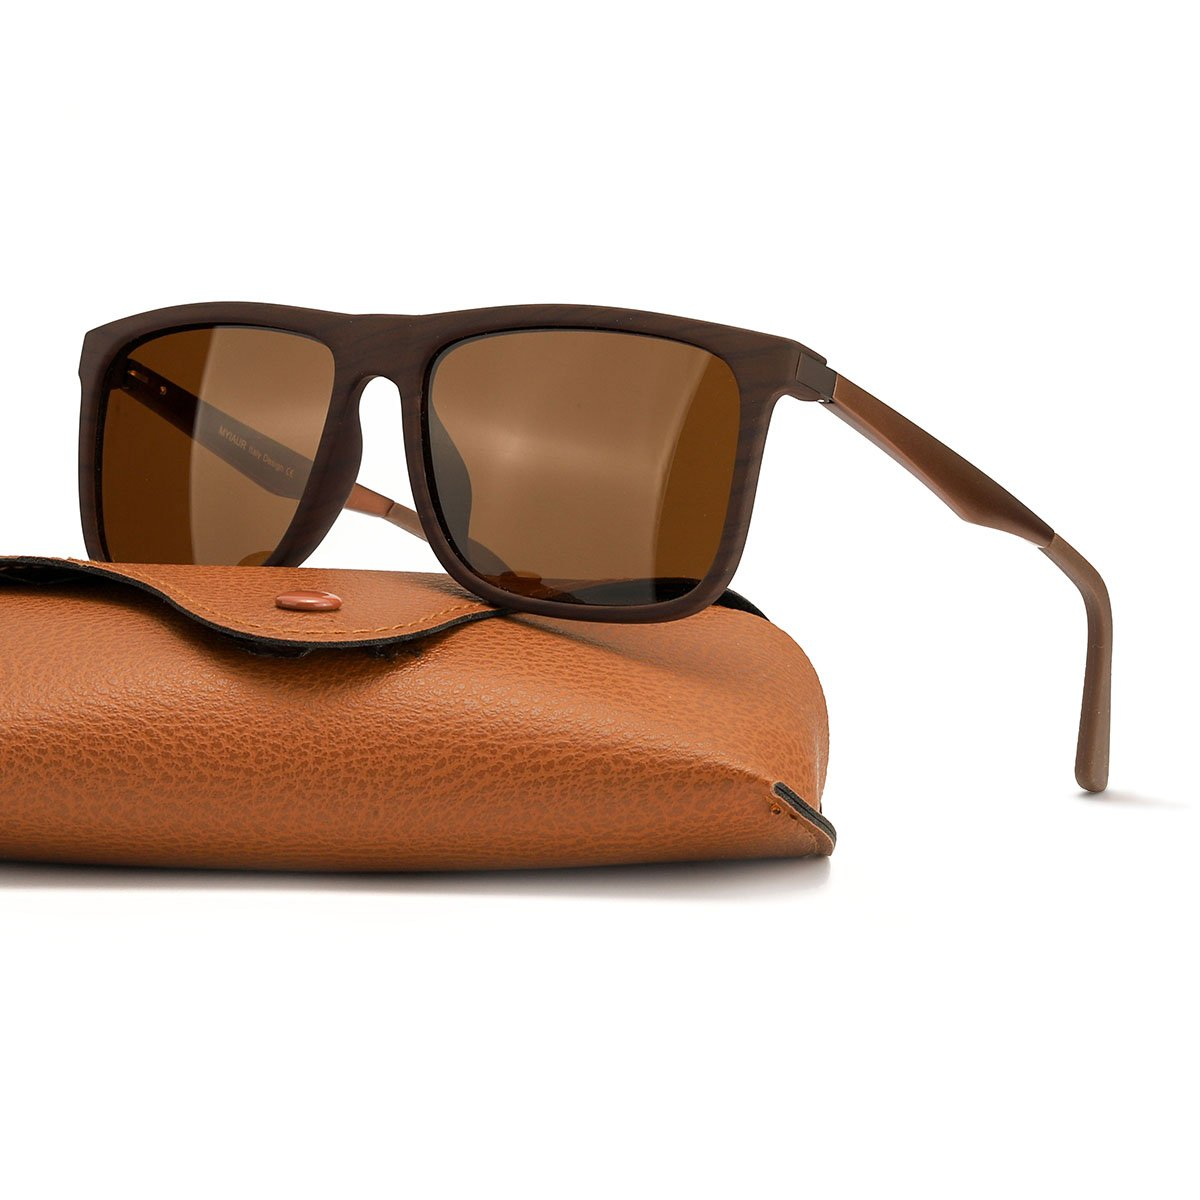 Classic Wayfarer Polarized Sunglasses for Women&Men 100% UV Protection (brown wood/brown)